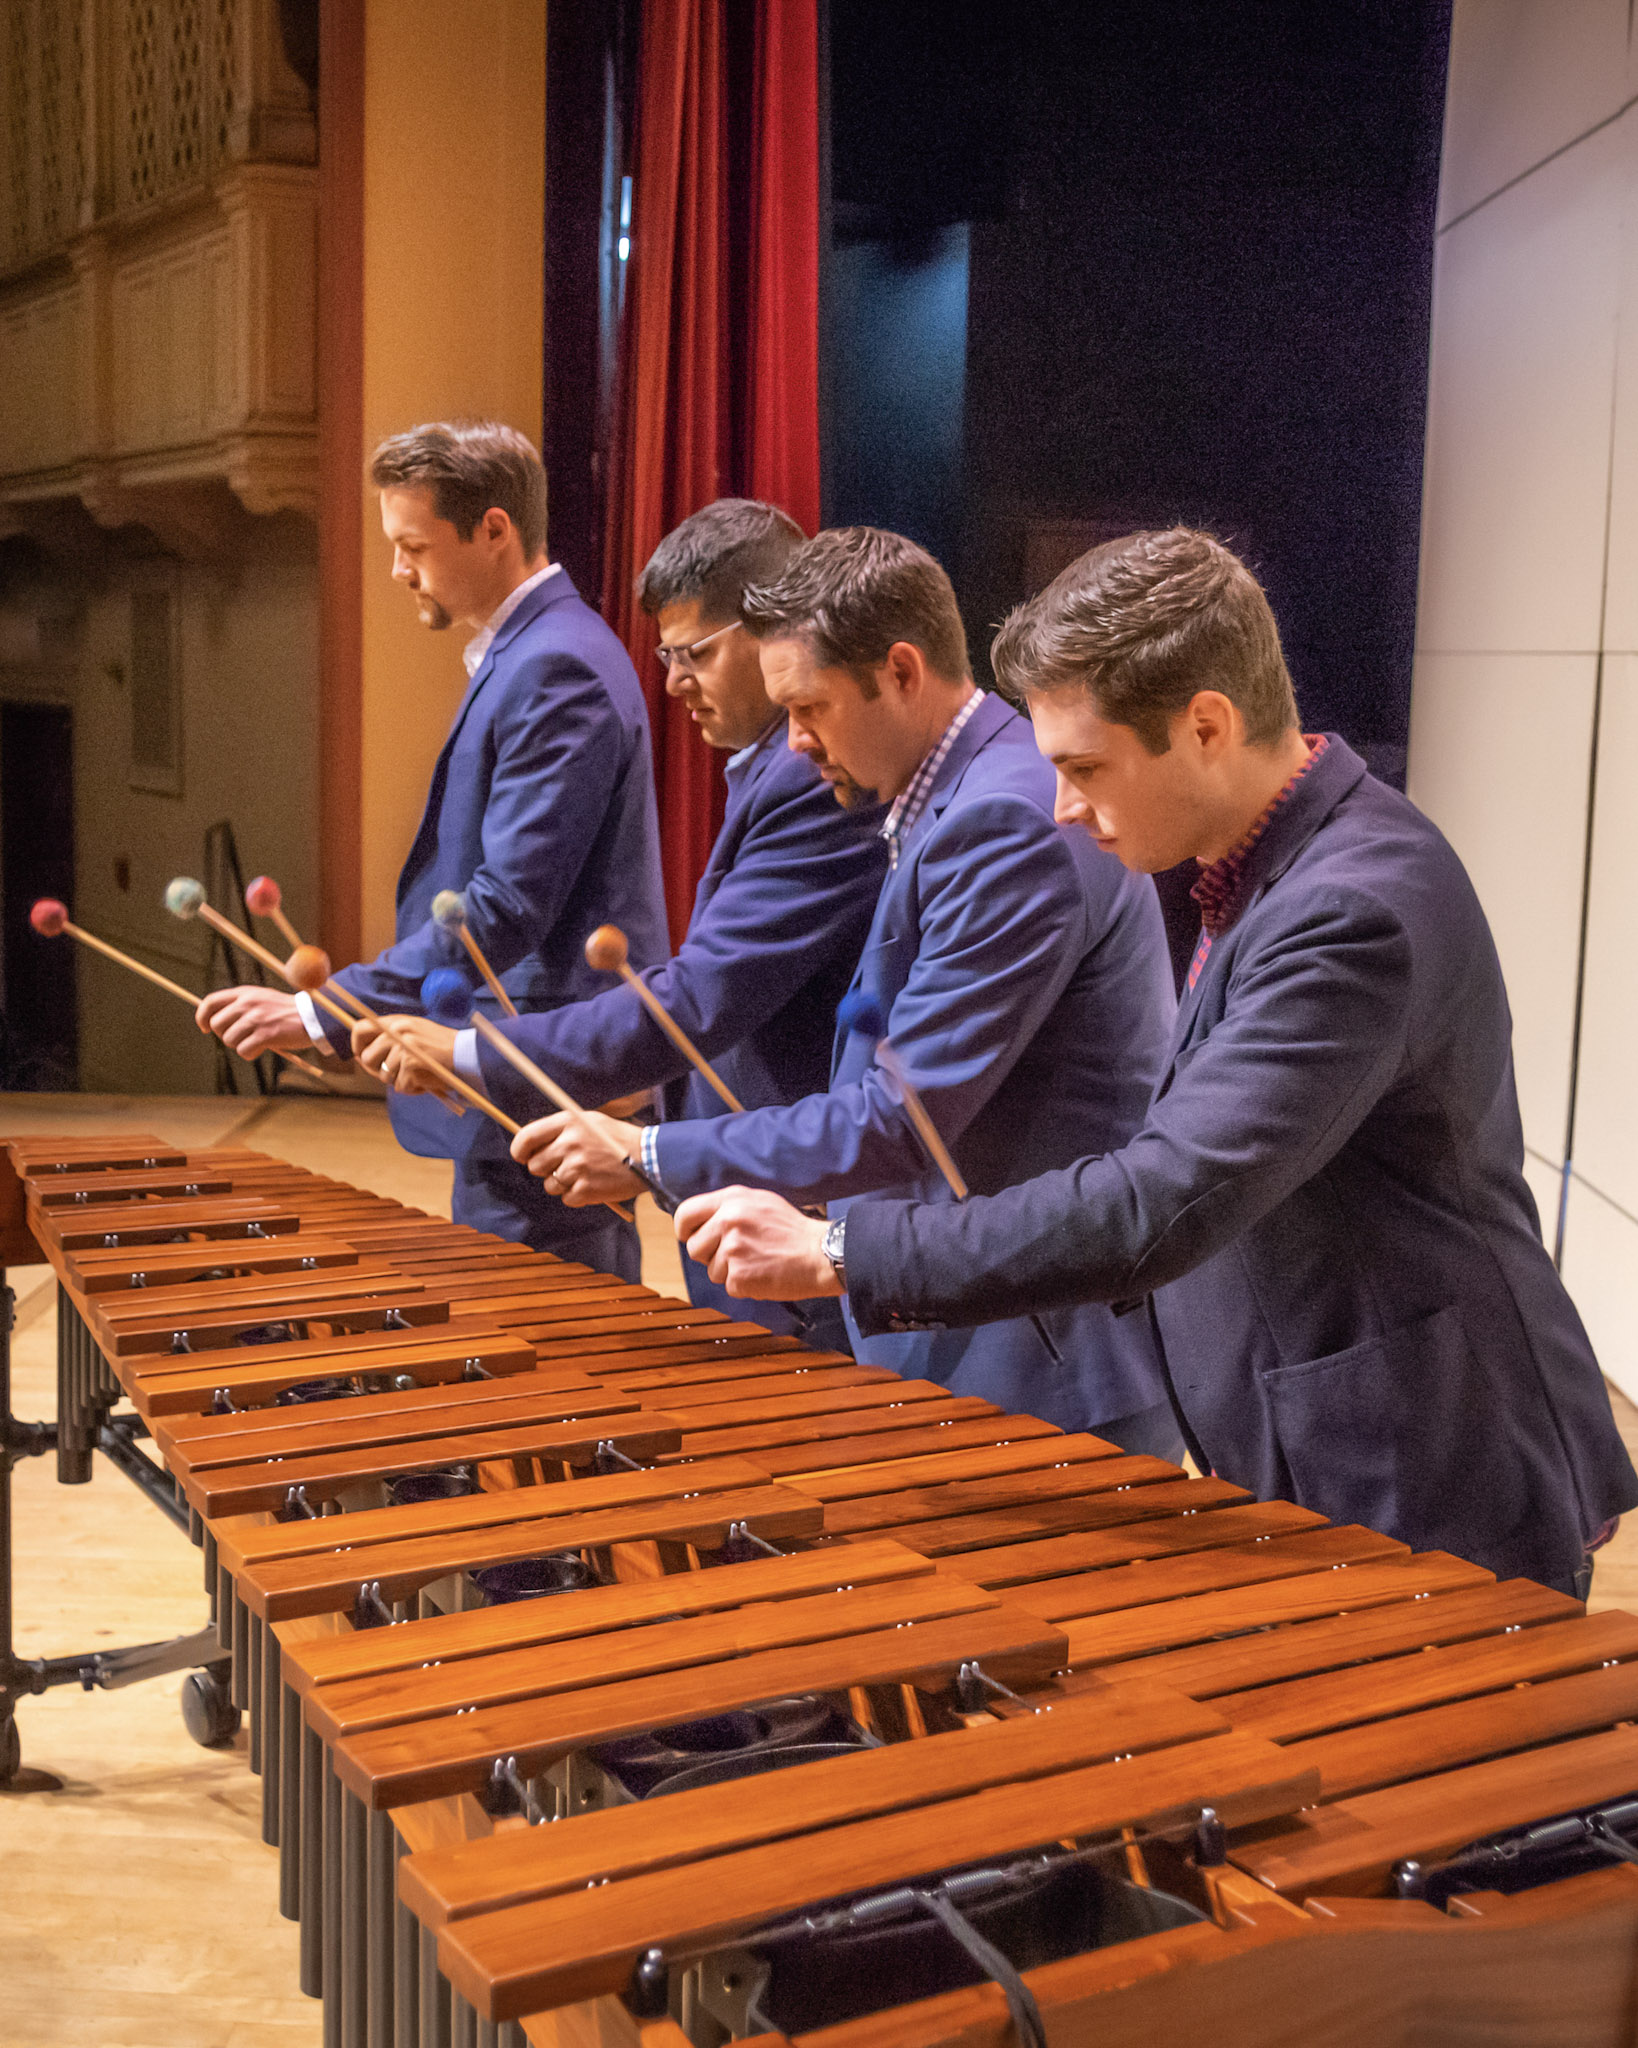 40-1-27-19 Orphic Percussion-1005-Edit.jpg